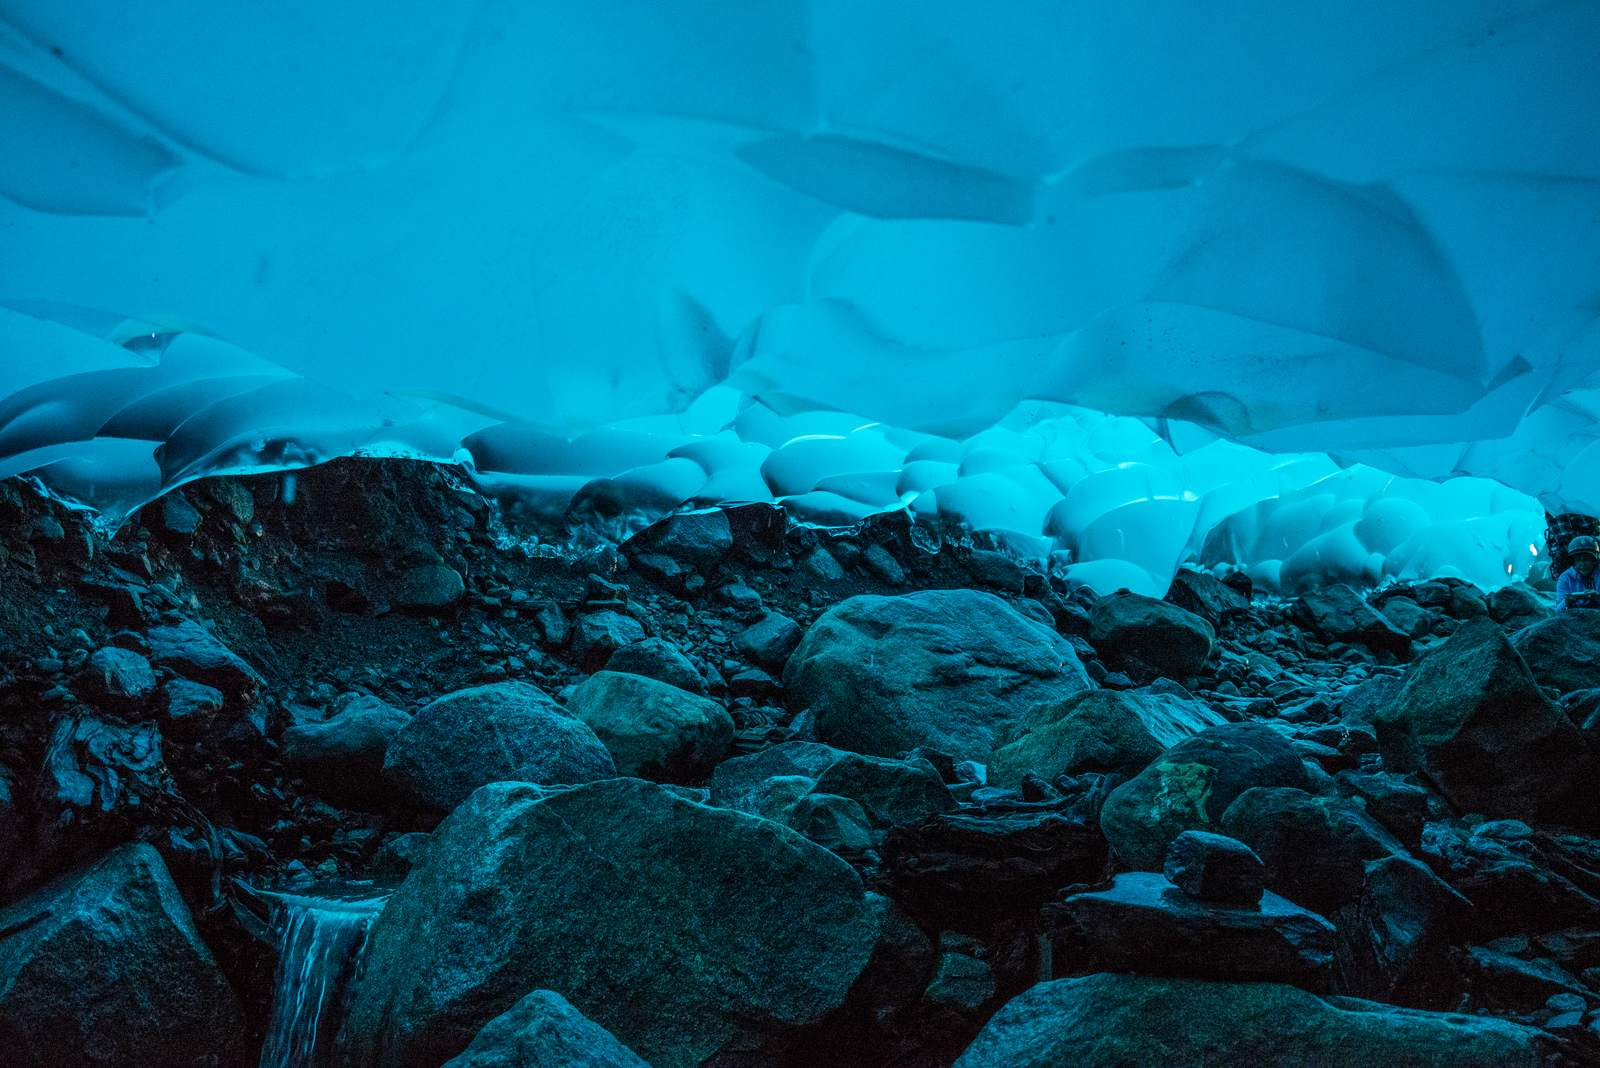 mendenhall1 Ice Caves under the Mendenhall Glacier in Juneau, Alaska